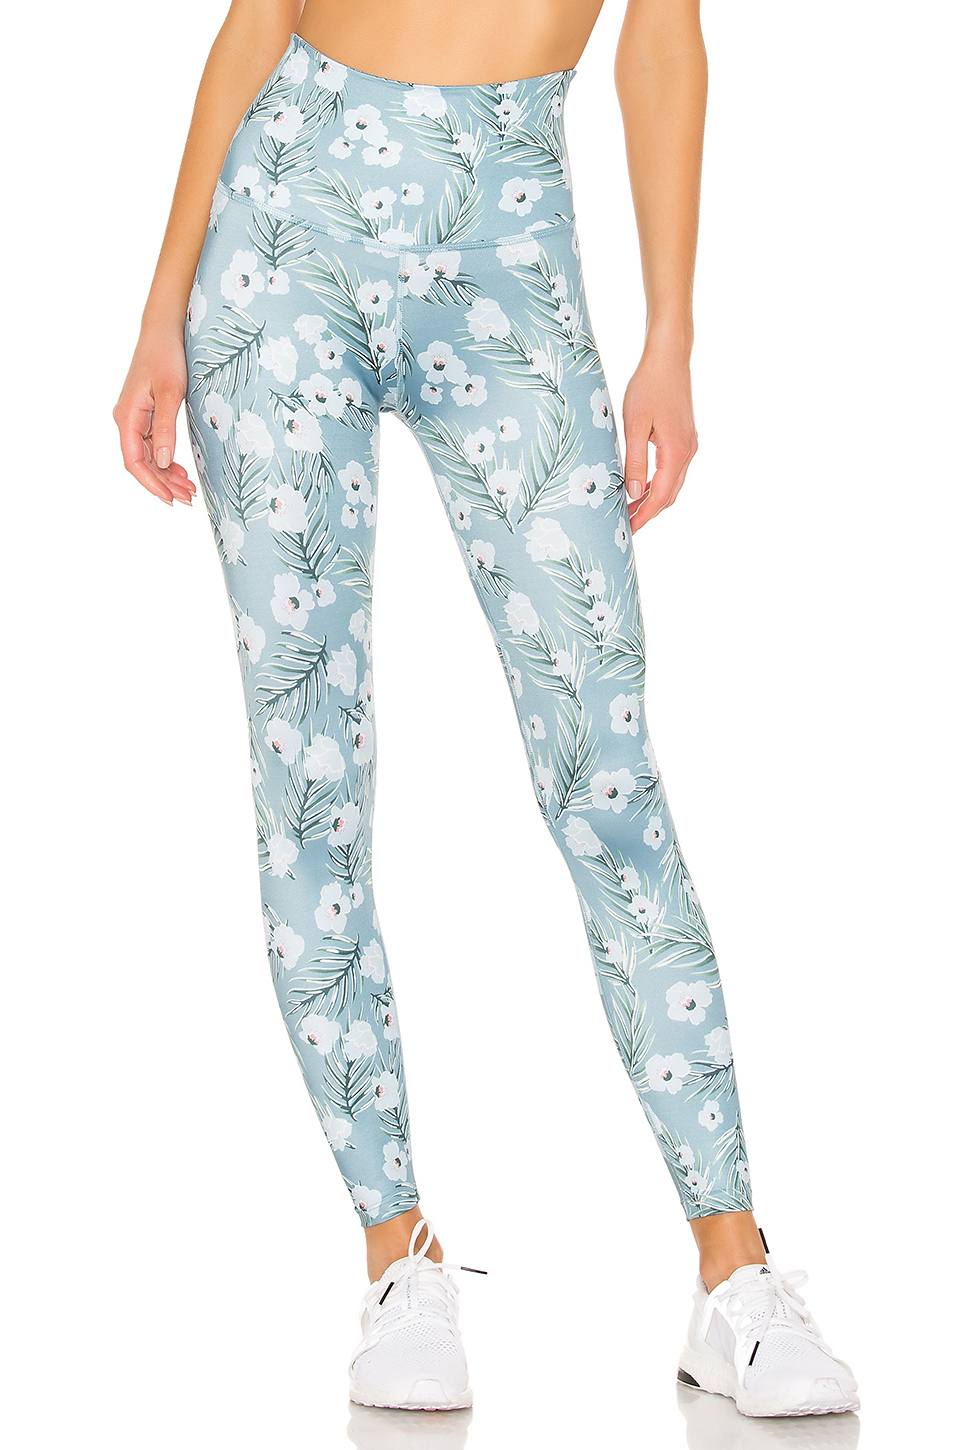 db78f281a6e2df Buy Original Beyond Yoga Lux Print High Waisted Midi Legging at ...